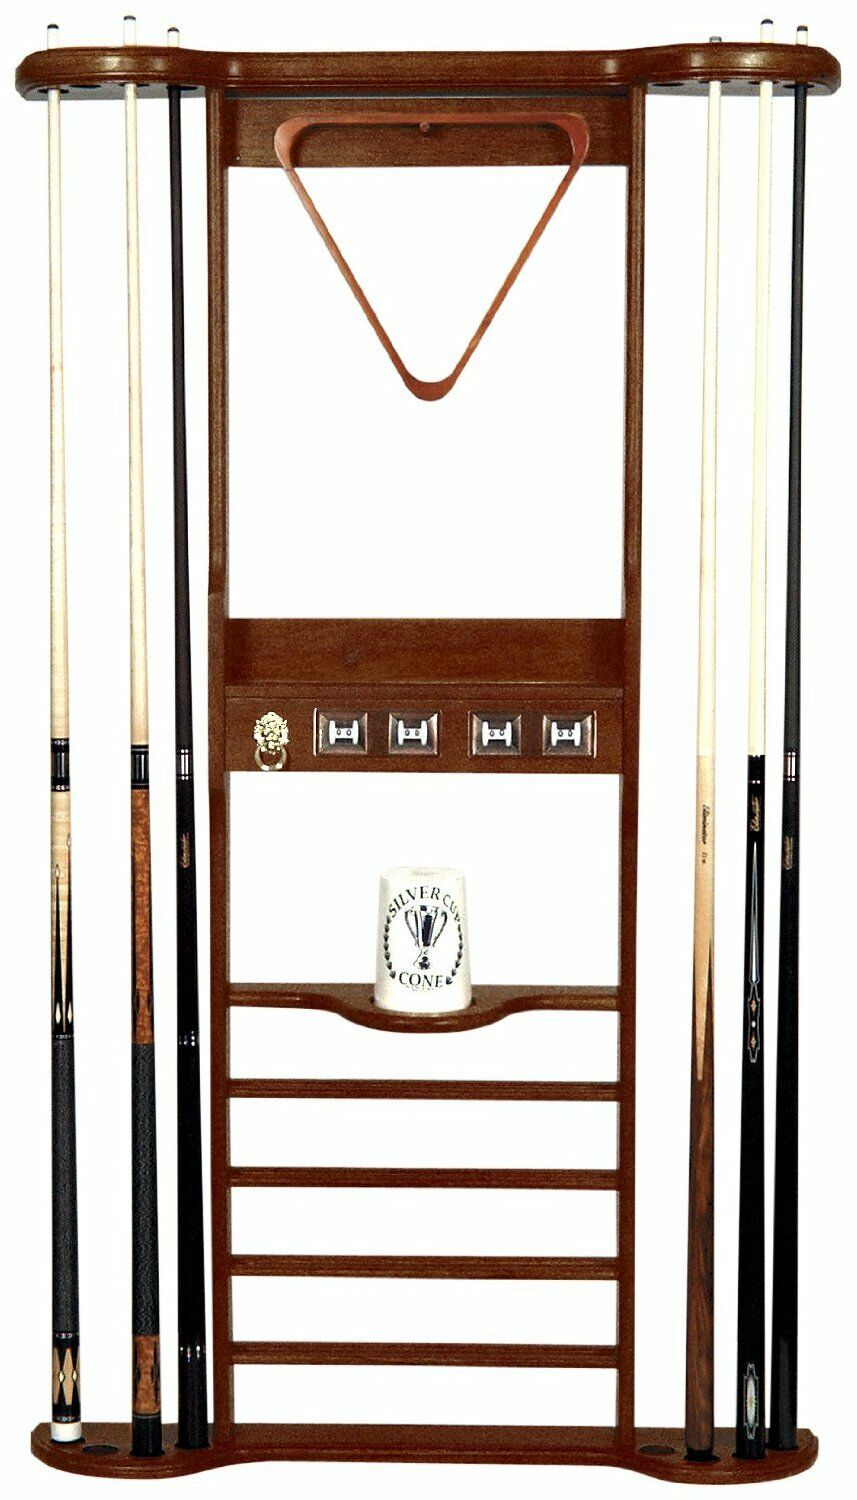 8 CUE WALL RACK with SCORERS for POOL TABLE / BILLIARD CUES